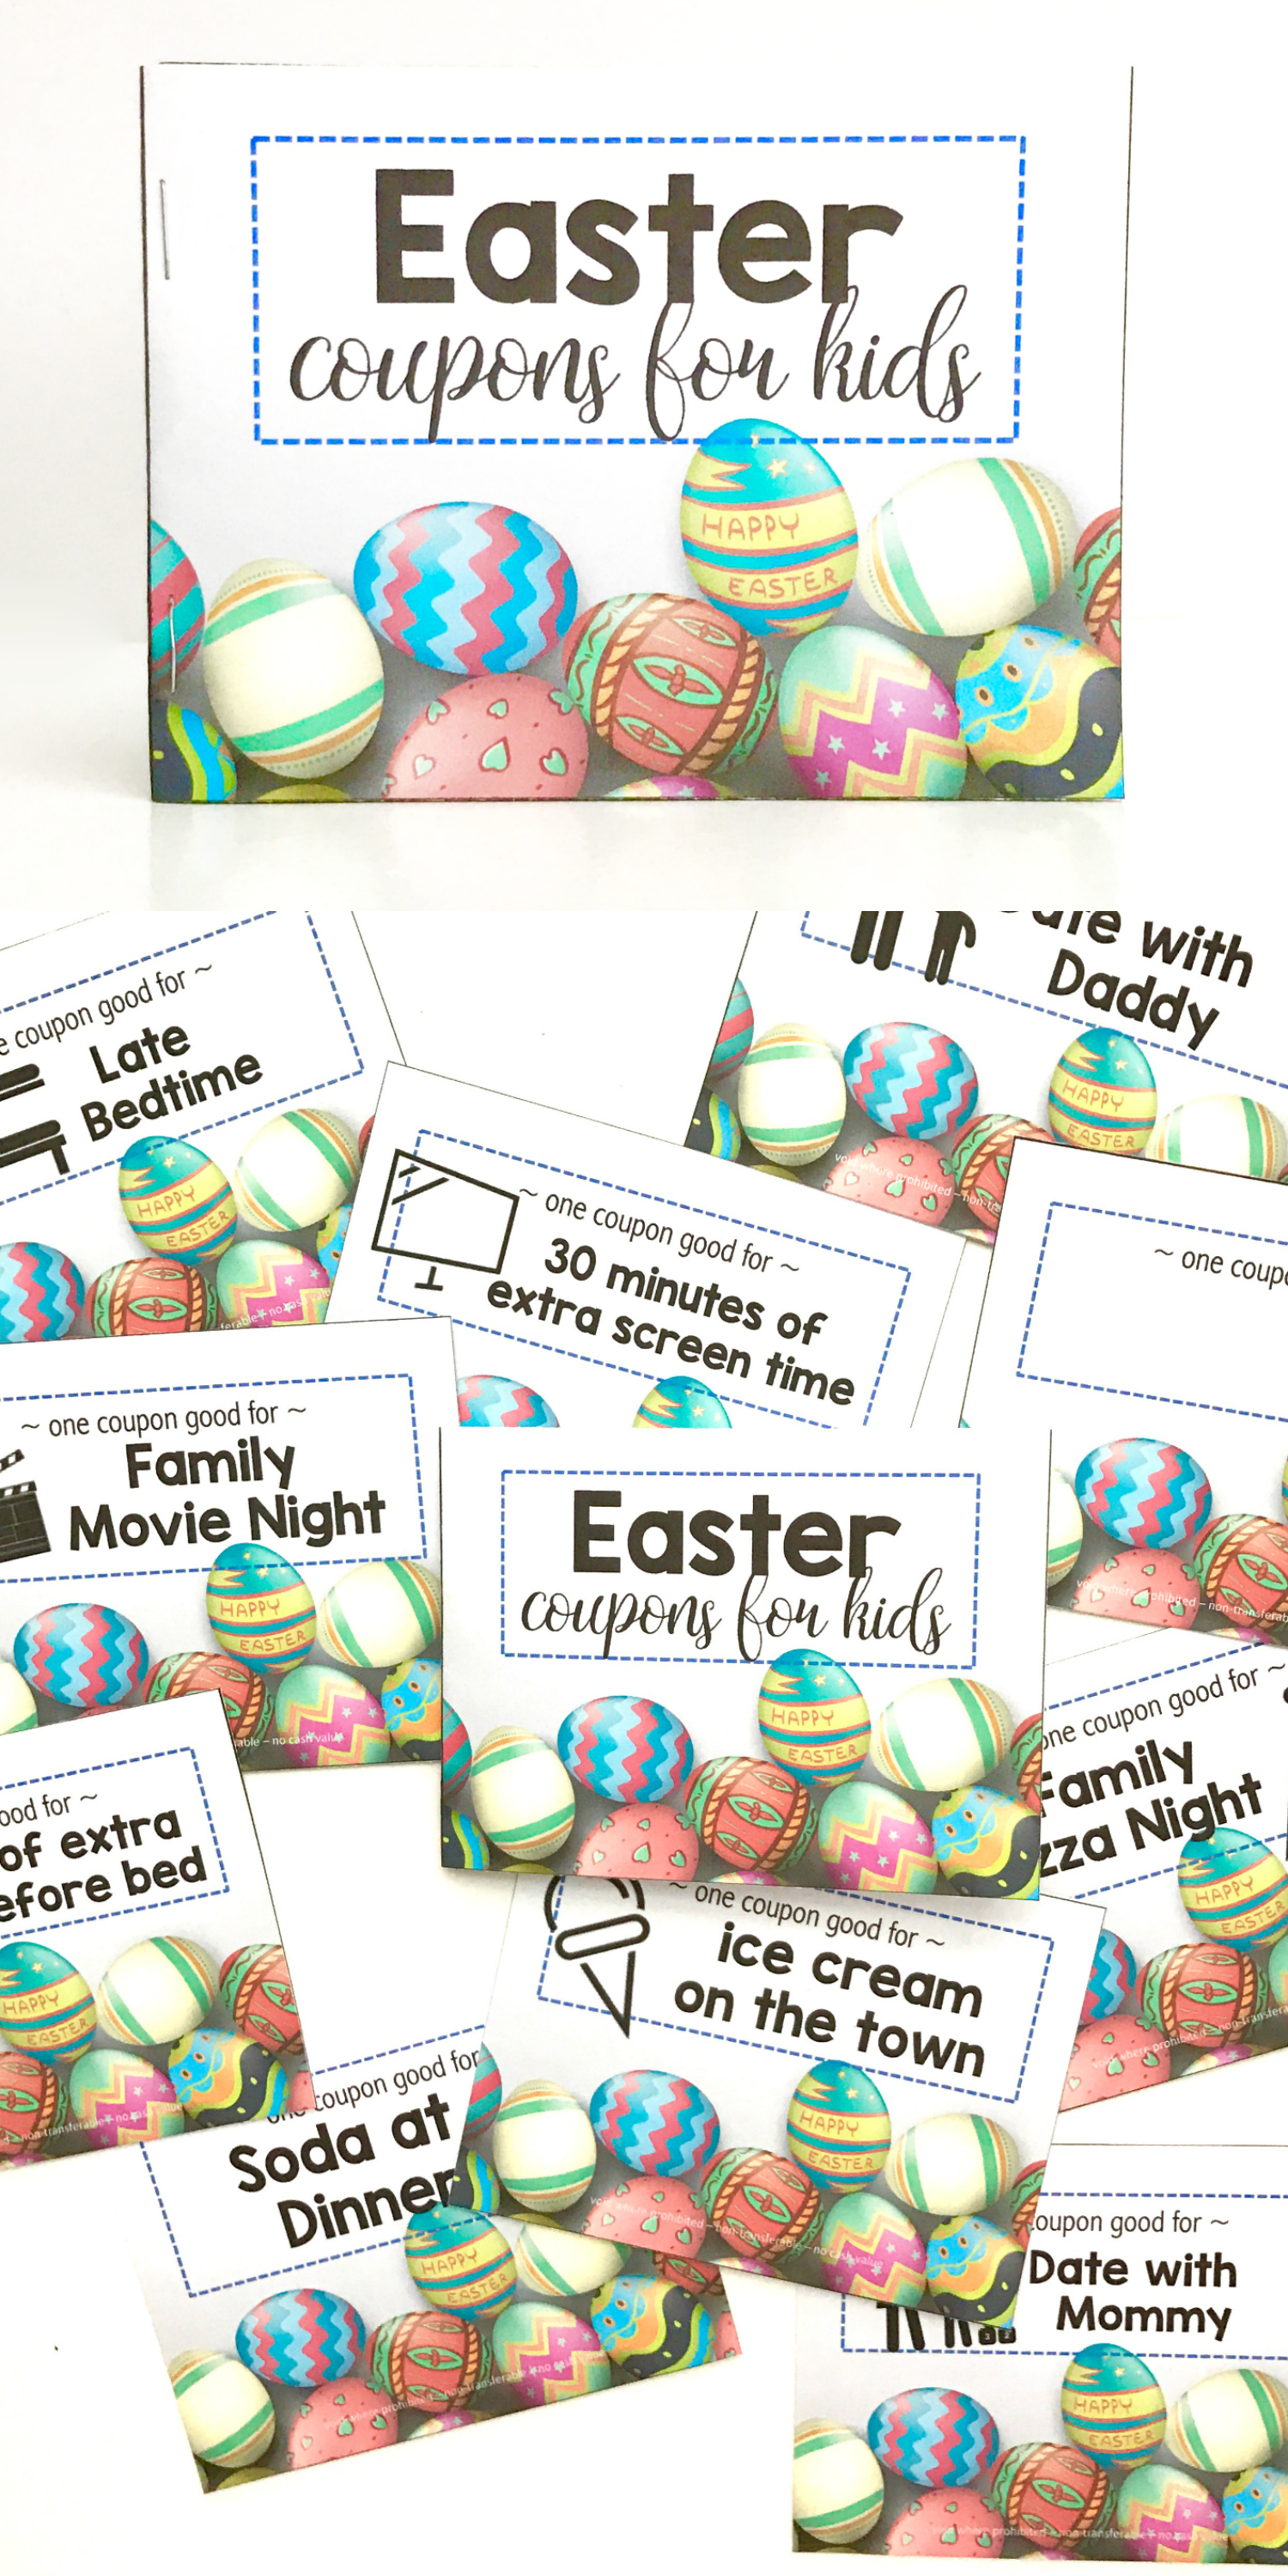 Printable Easter Coupons For Kids - I Can Teach My Child! - Free Printable Crayola Coupons